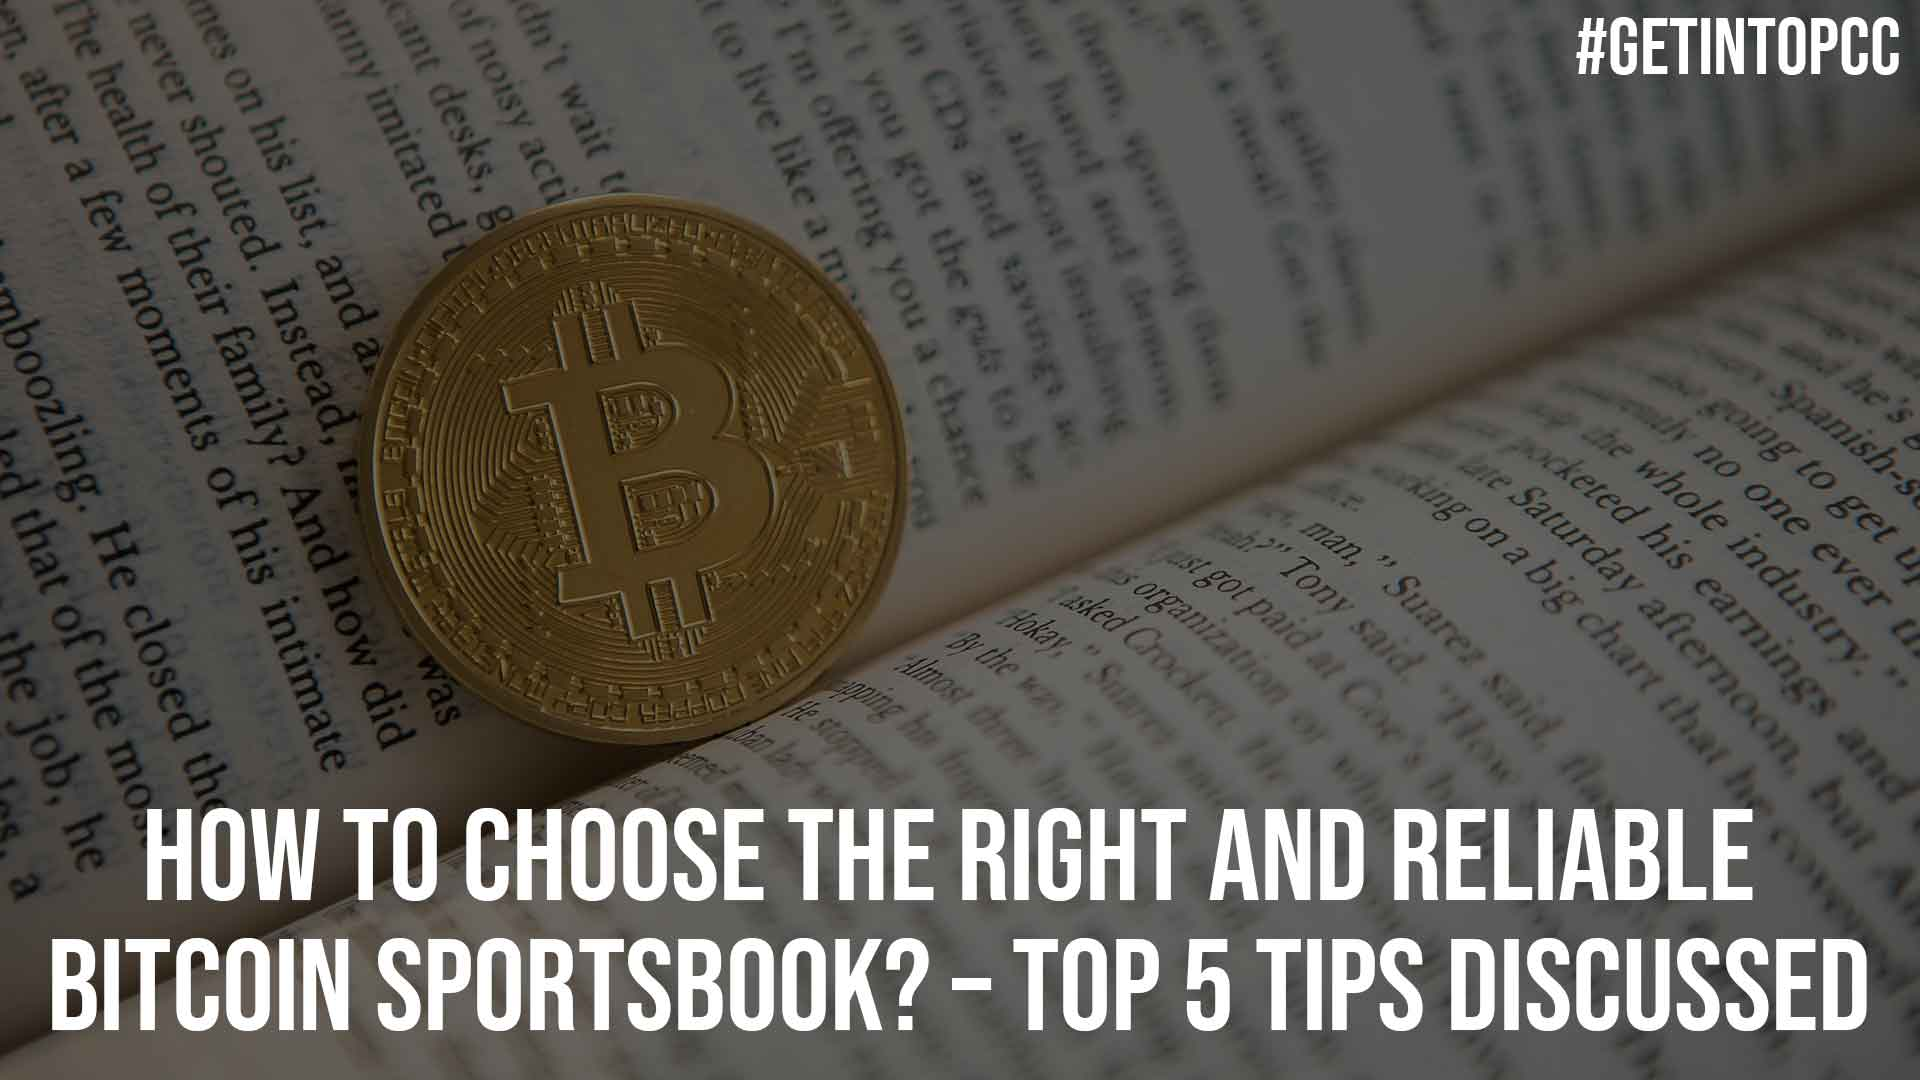 How To Choose The Right And Reliable Bitcoin Sportsbook Top 5 Tips Discussed